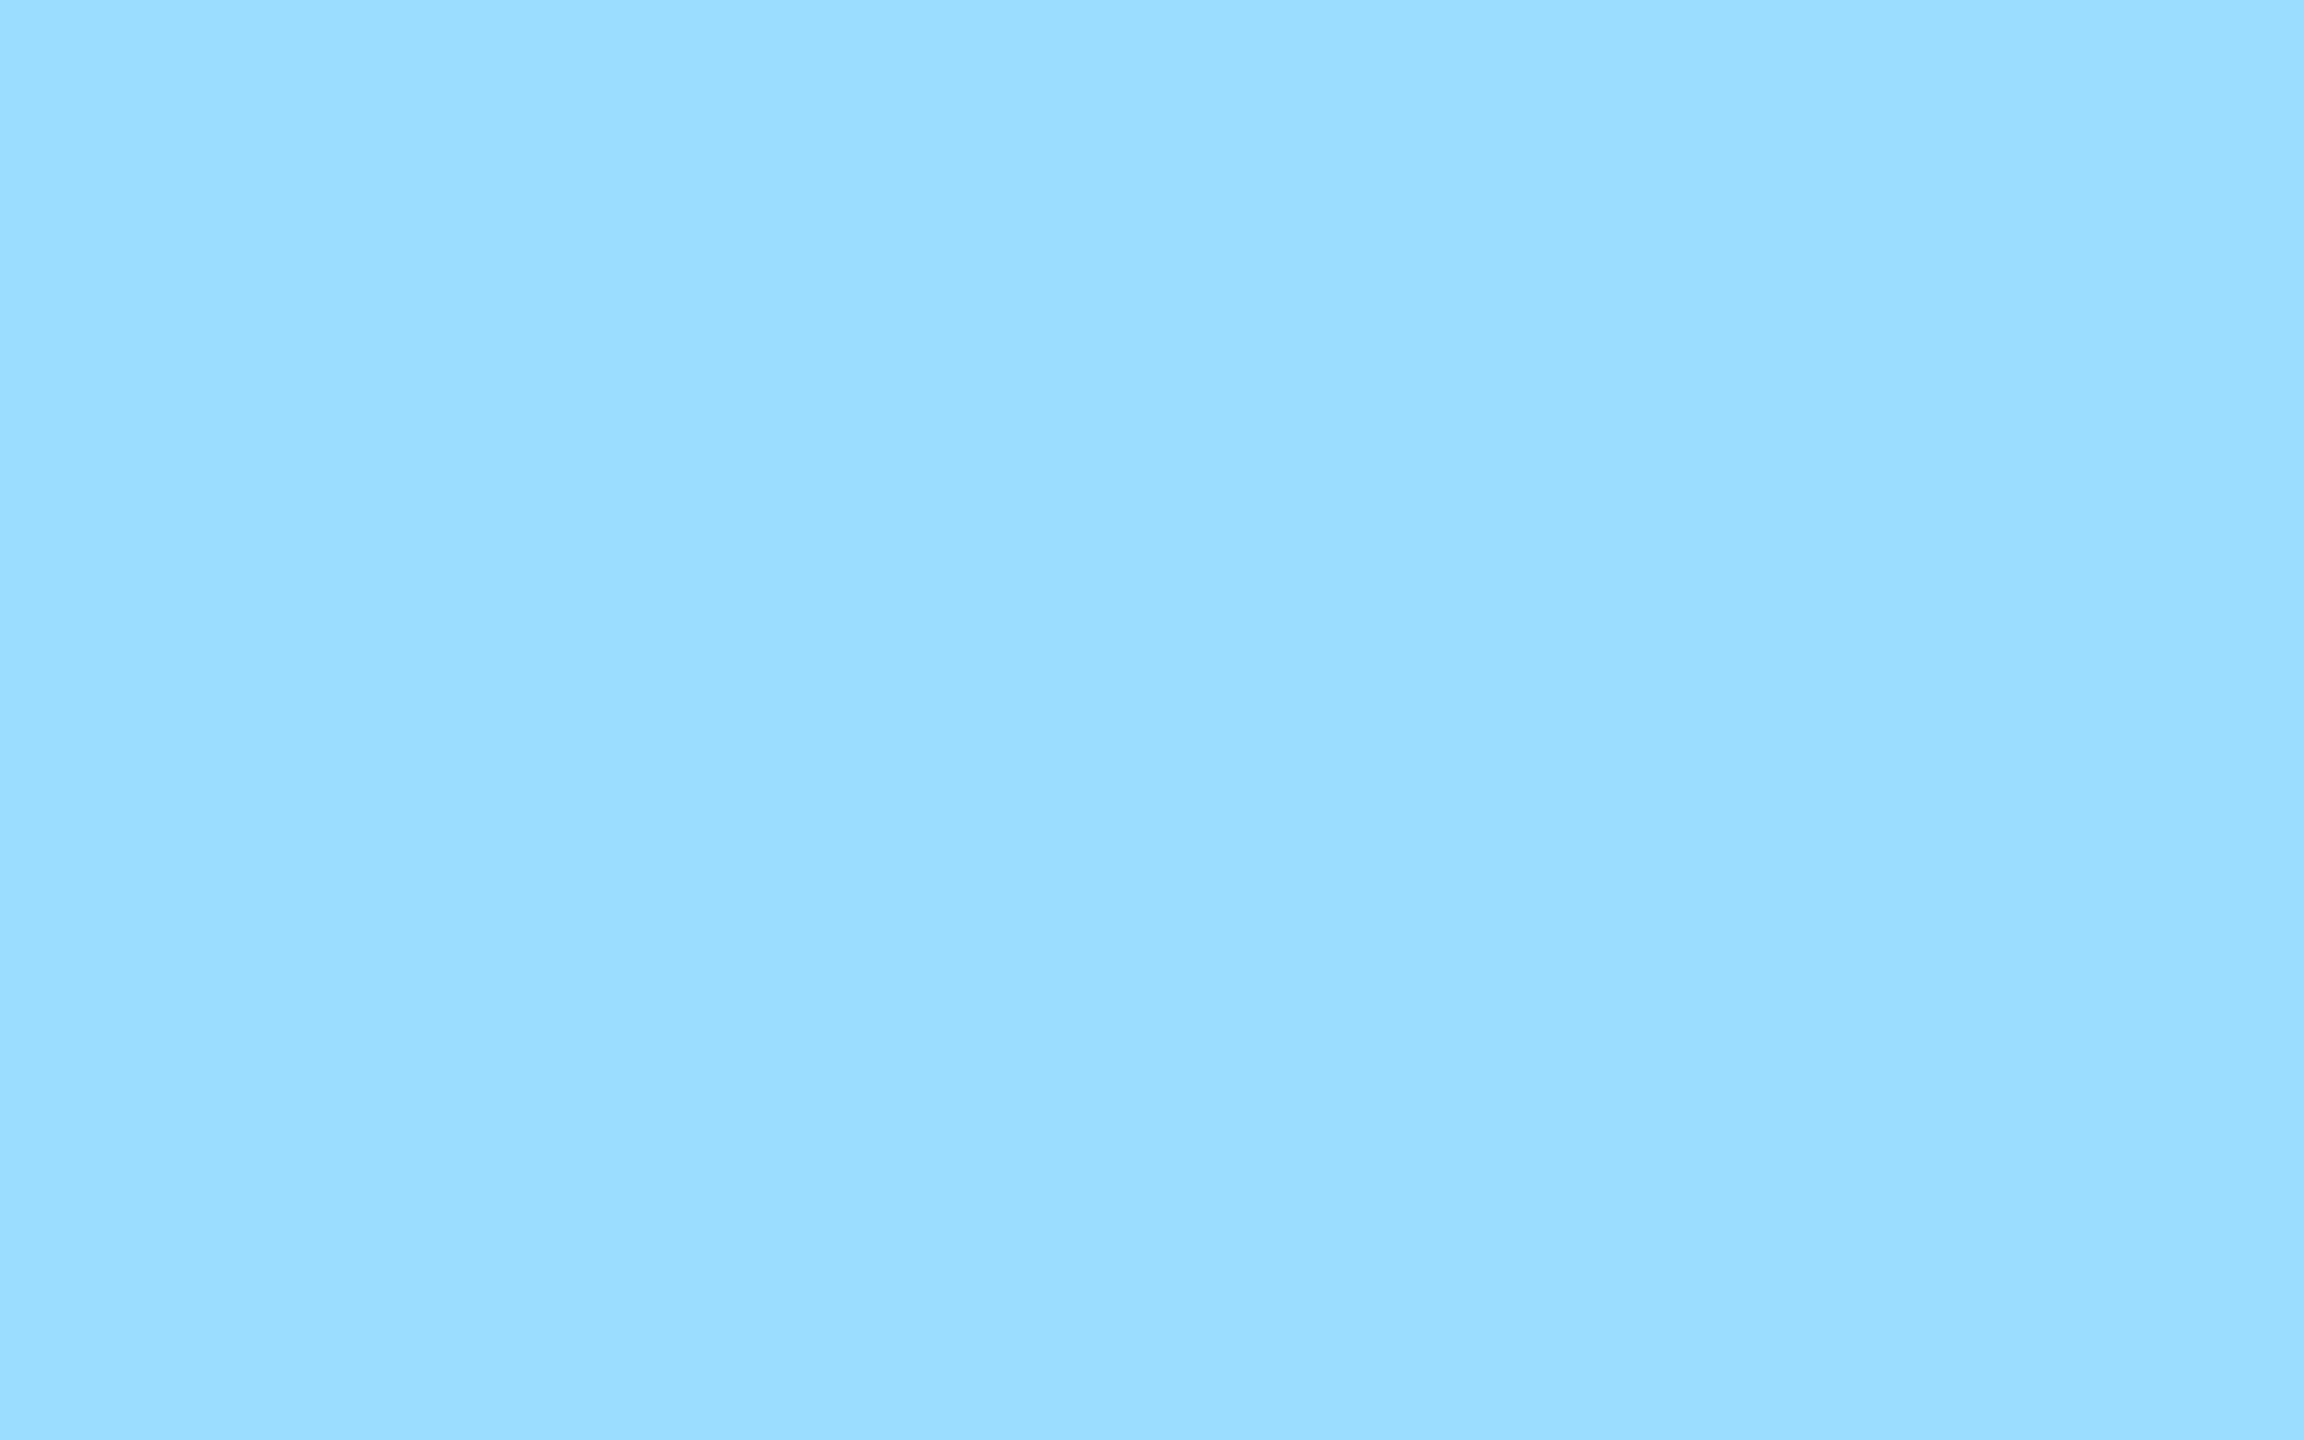 2304x1440 Columbia Blue Solid Color Background